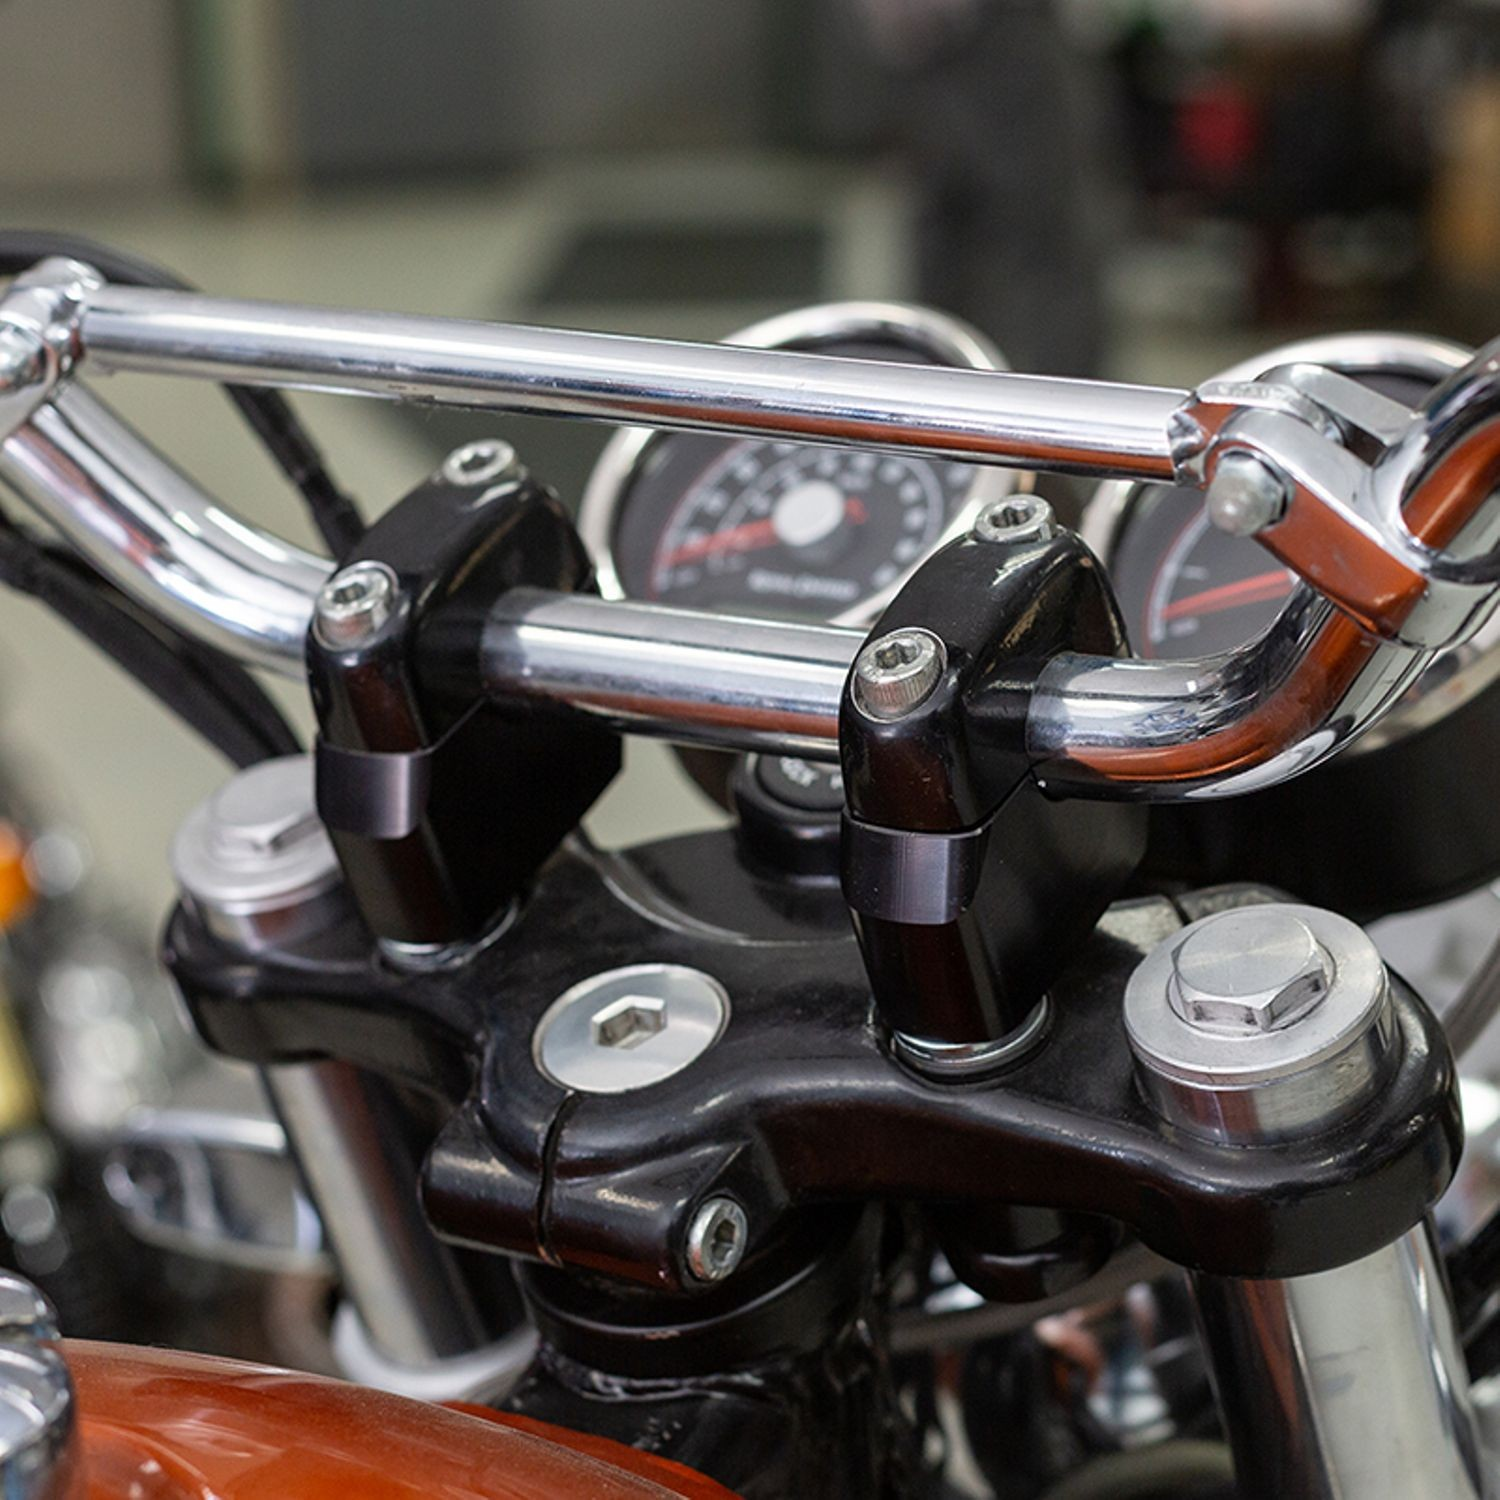 S&S Handlebar Adjuster Kit for Royal Enfield INT 650 Twins